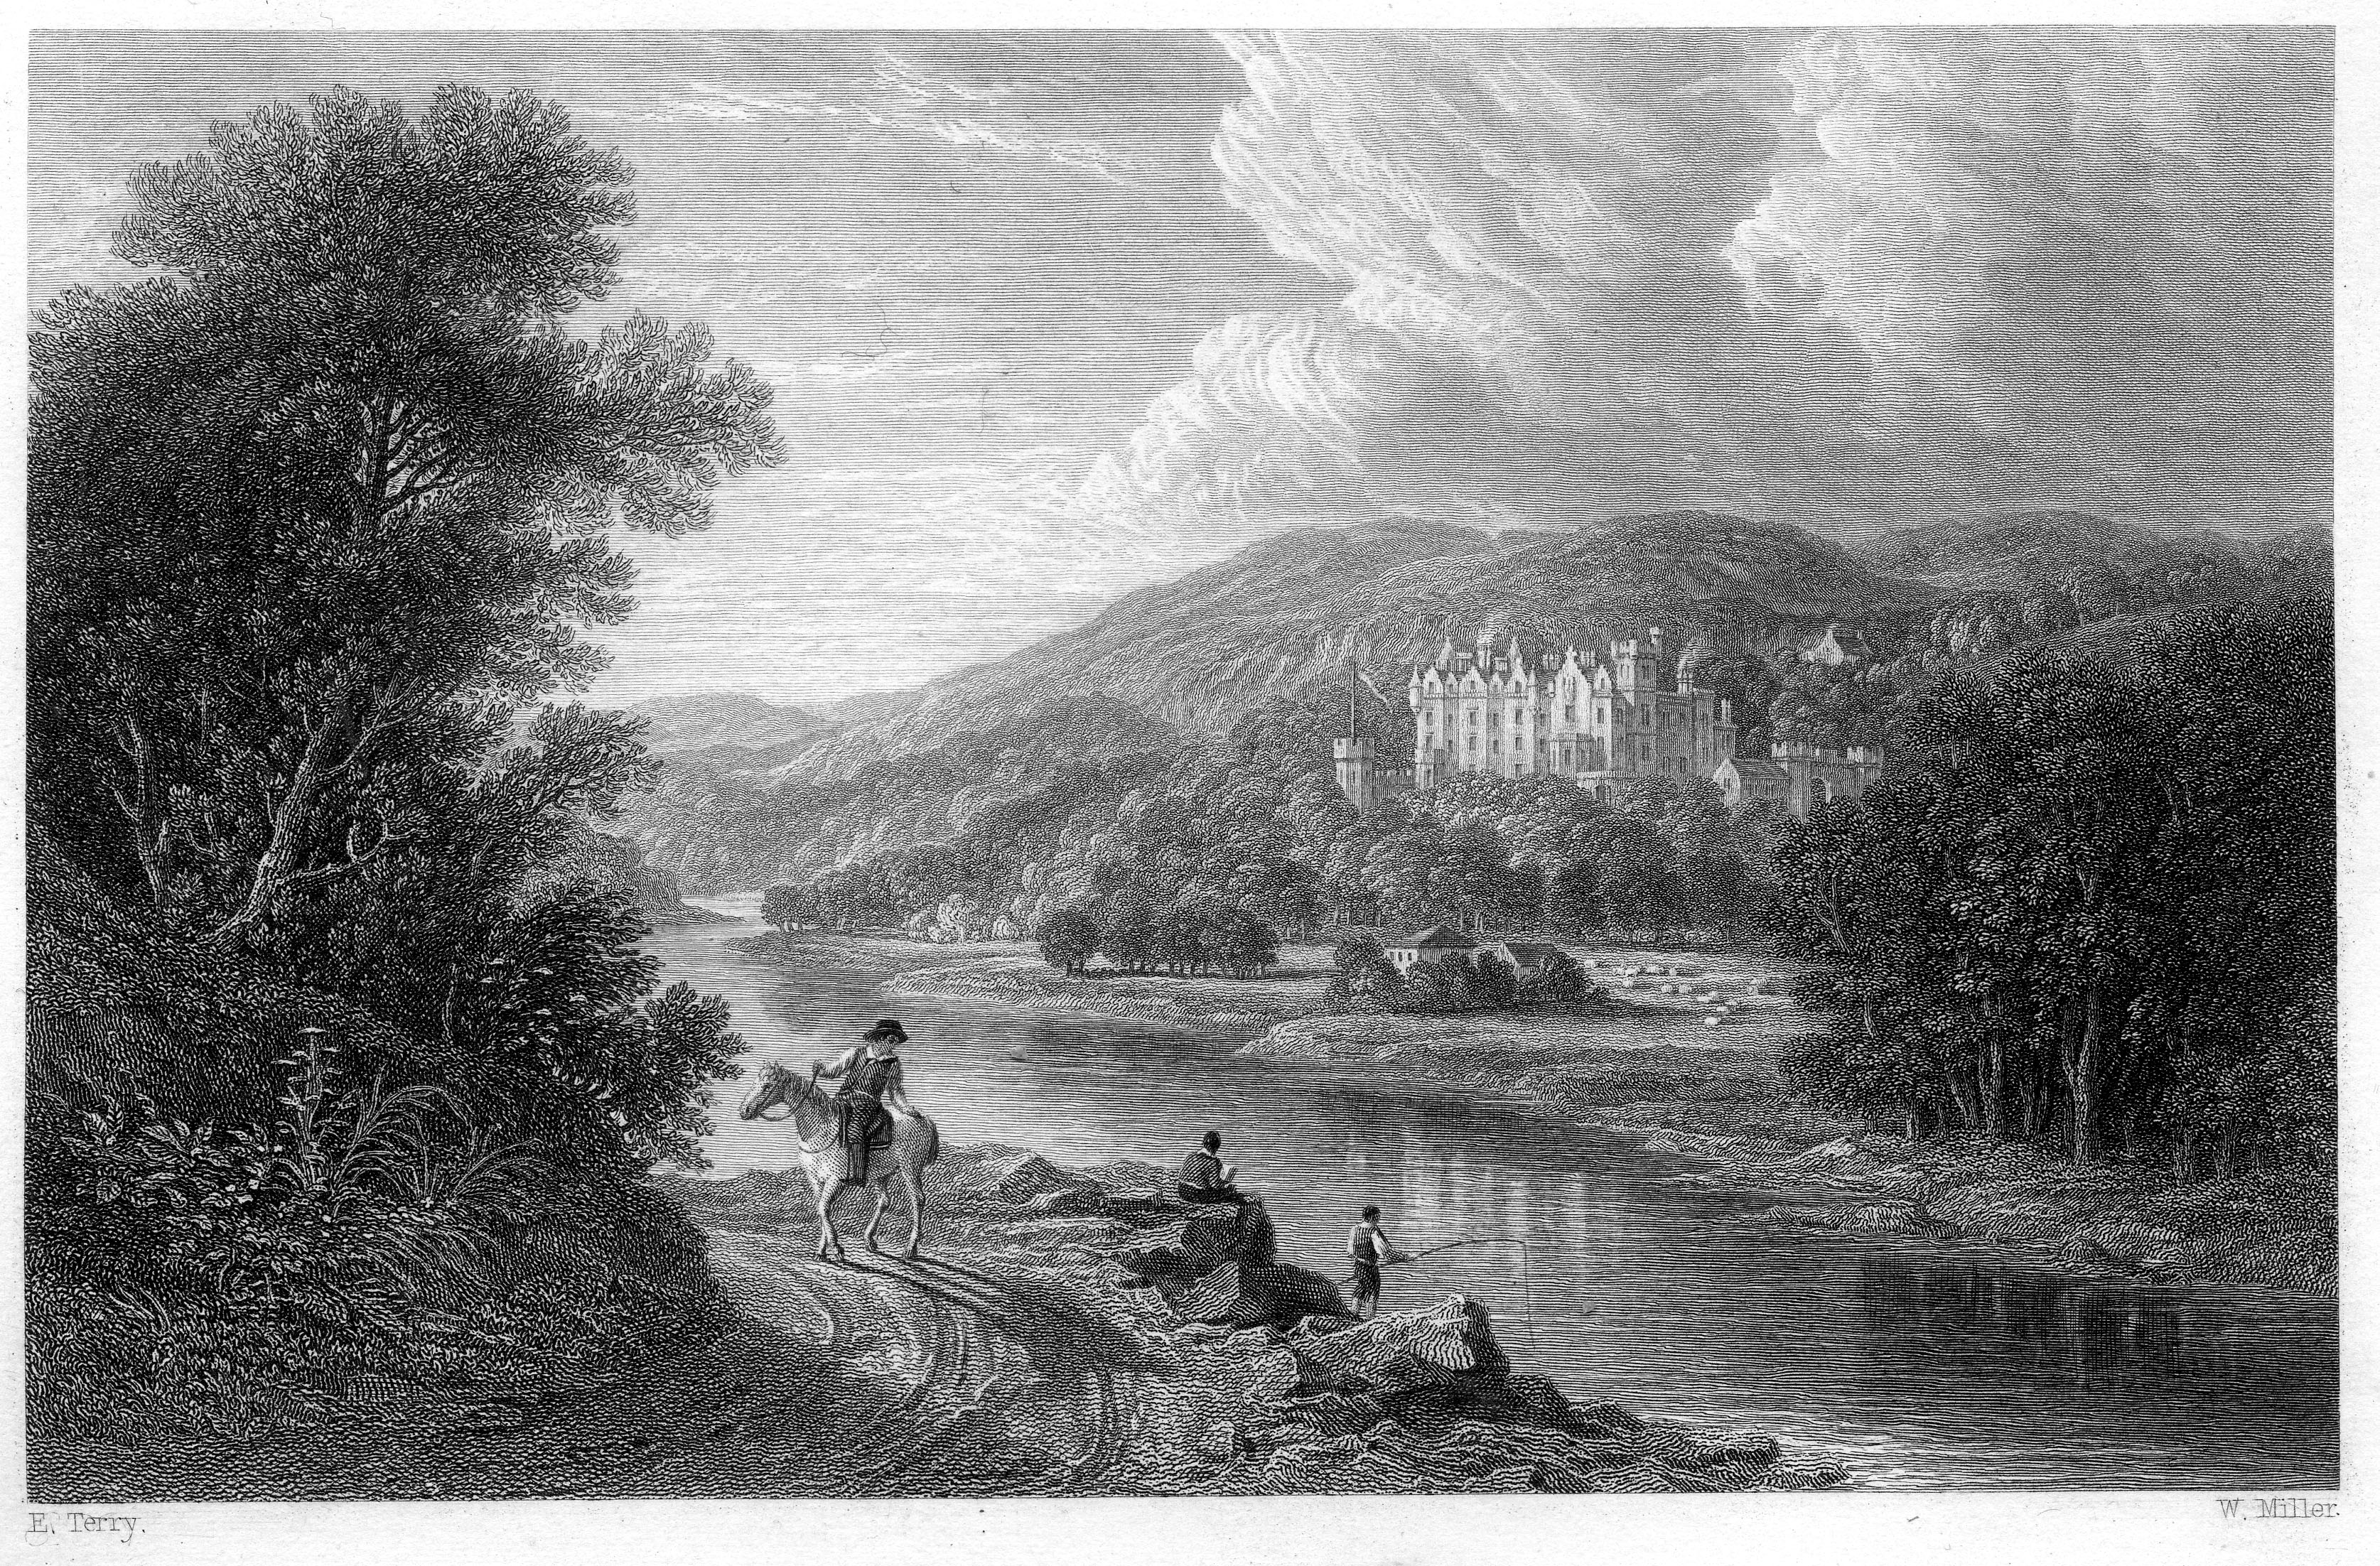 Abbotsford (WI) United States  city images : Abbotsford from North bank of Tweed engraving by William Miller ...